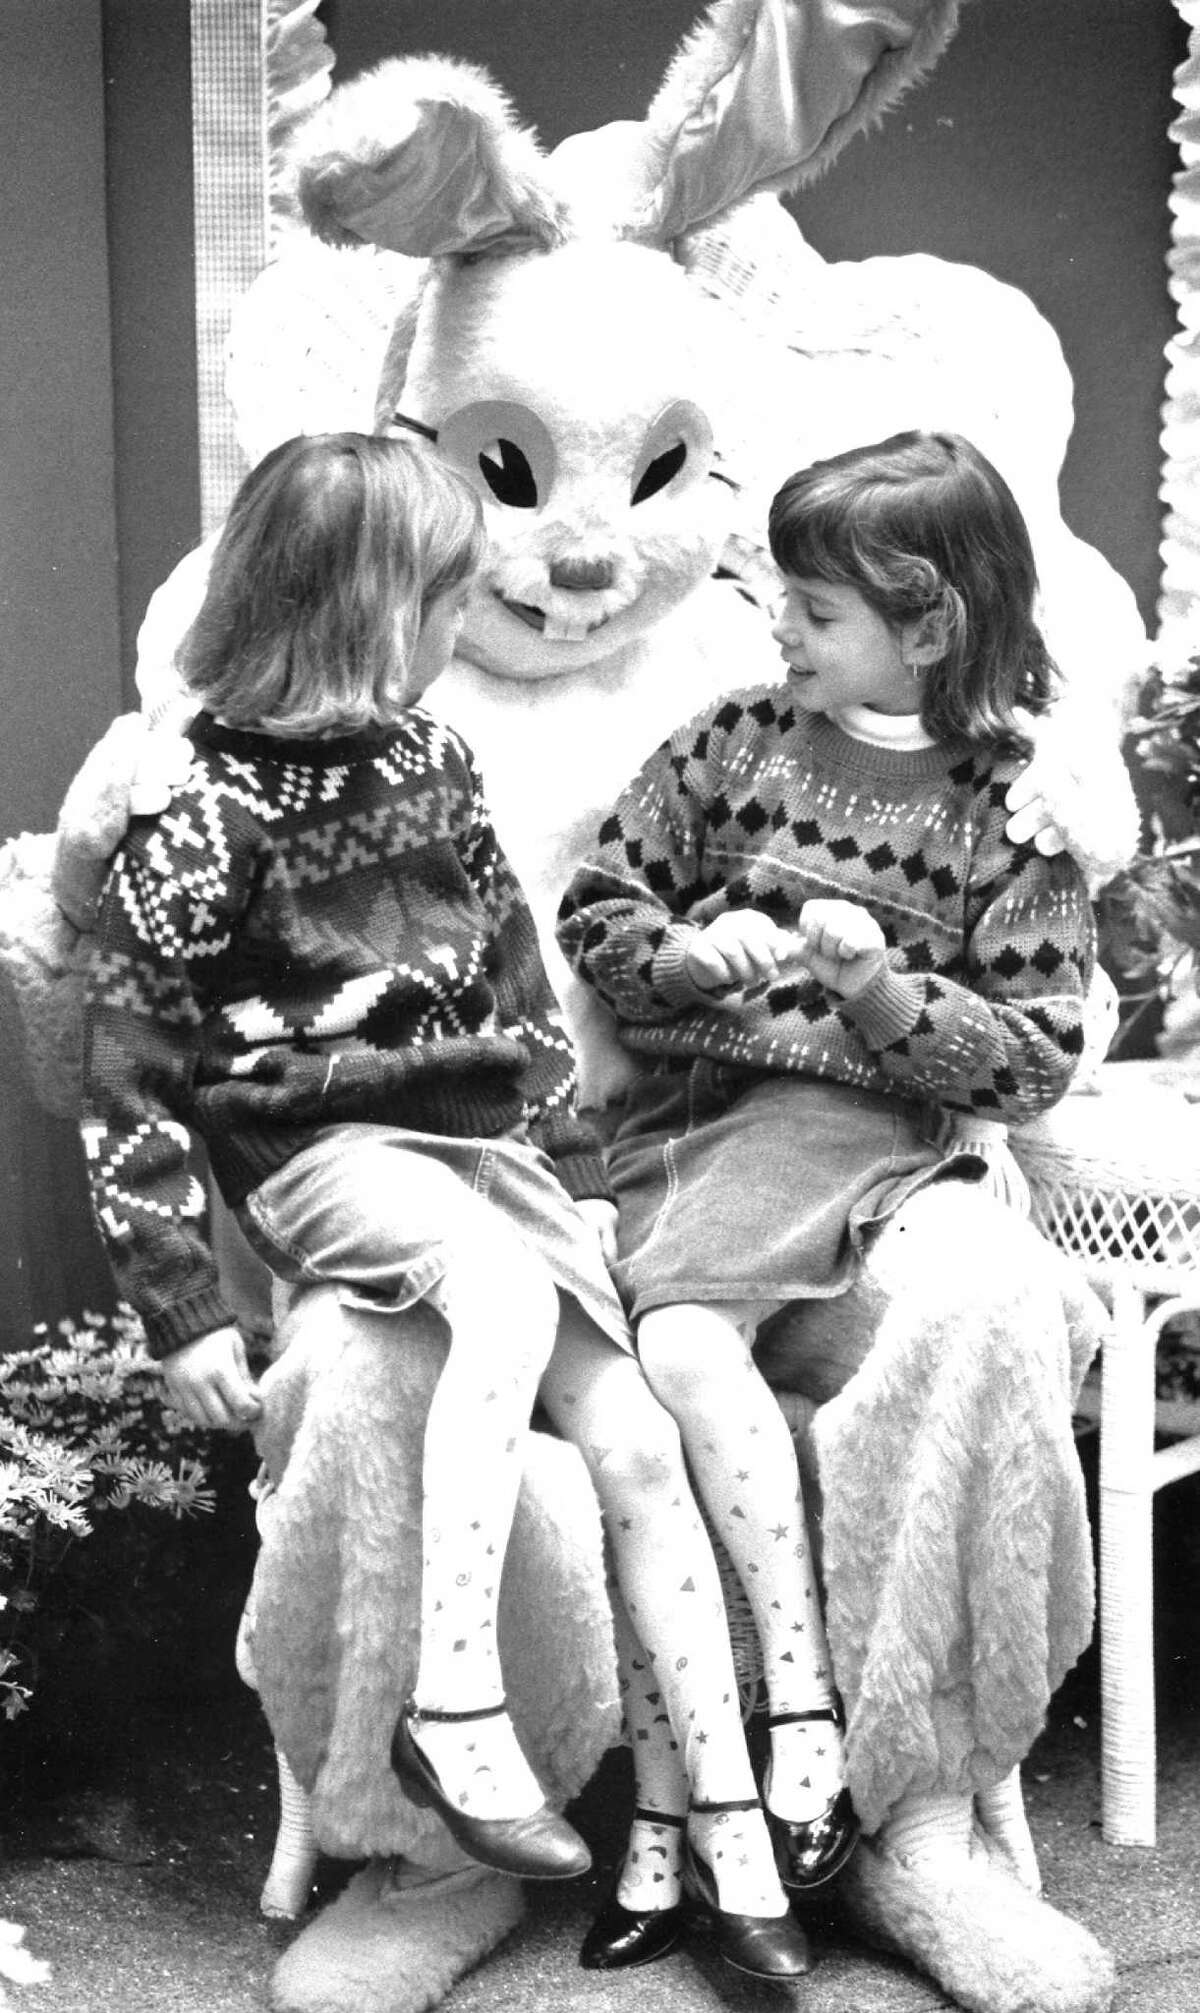 Easter bonnets and chocolate eggs might be the topic of conversation as Vanessa, 5, left, and Jordana Scanlan, 6, meet the Easter Bunny (Kevin Myer) at the Stamford Town Center on March 19, 1988.